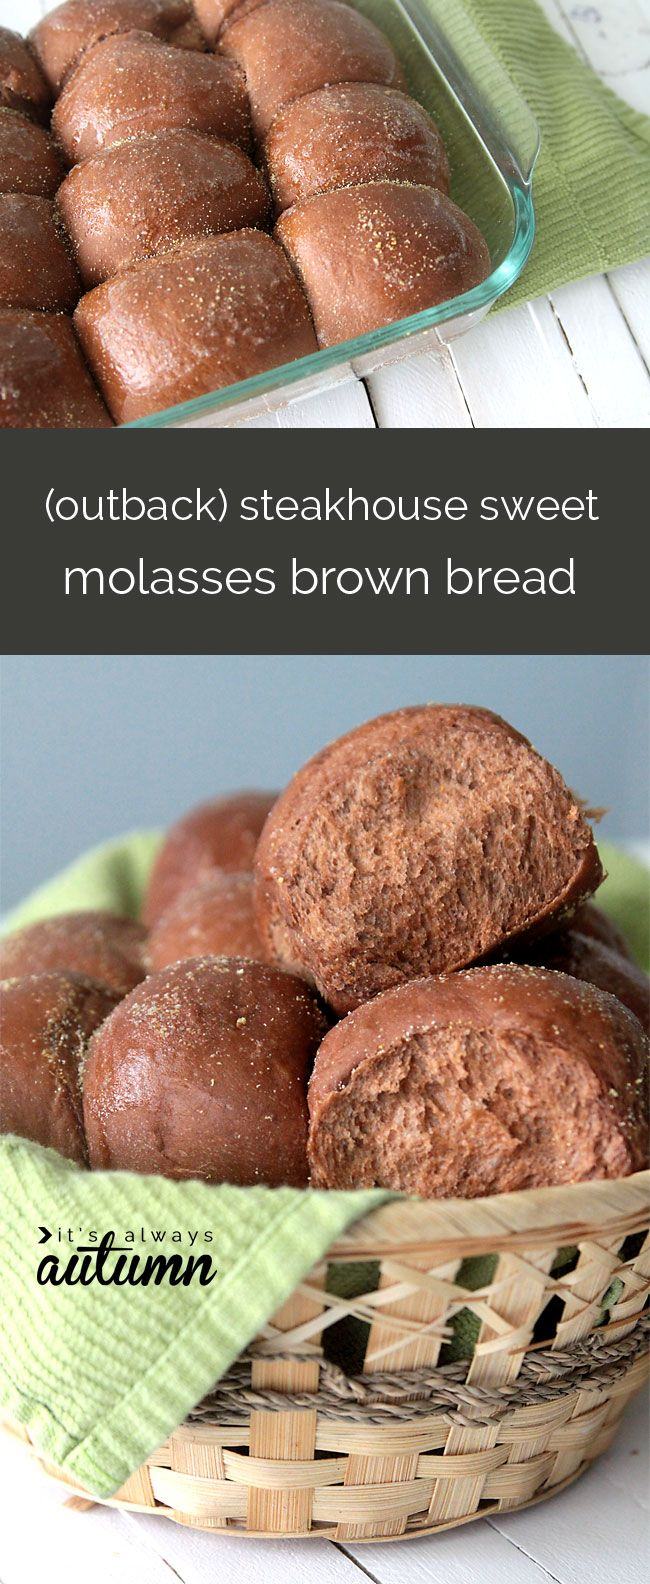 Steakhouse Sweet Brown Molasses Bread Recipe